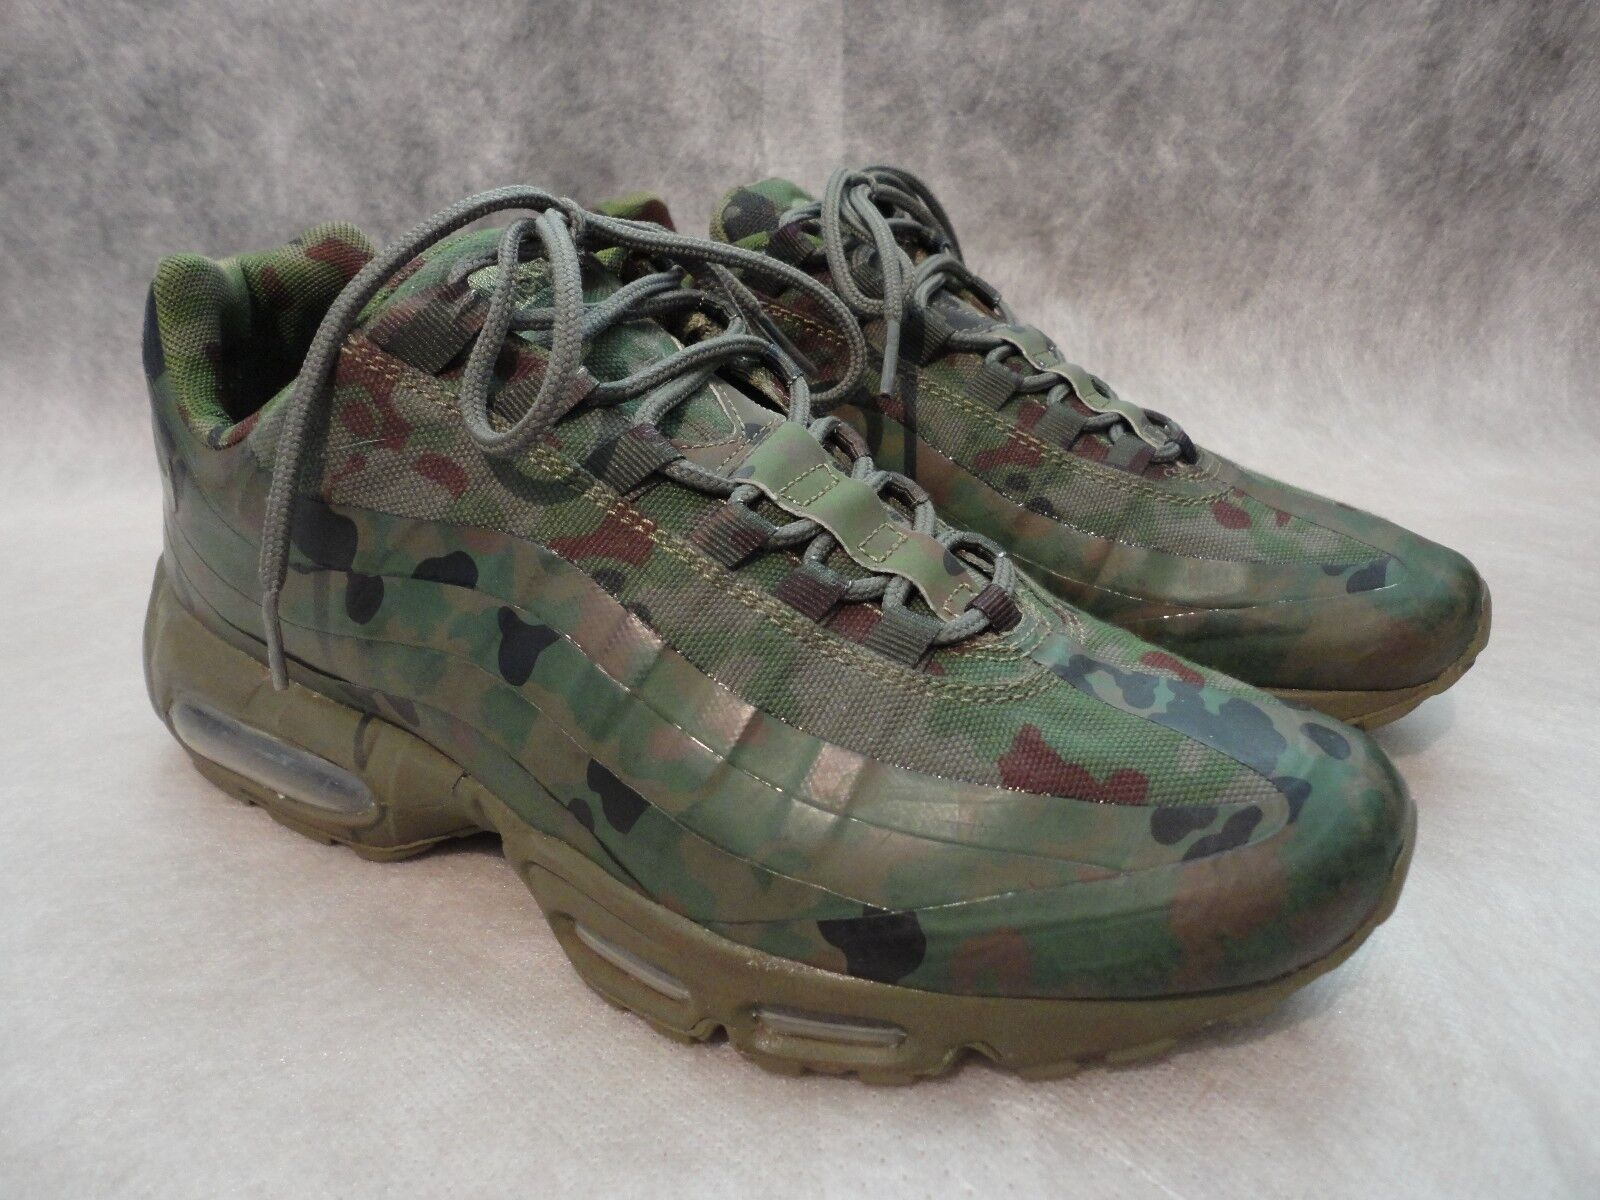 NIKE AIR MAX 95 Olive verde Camo Japan SP 634775-220 Release 2013 sz 9 Trainers